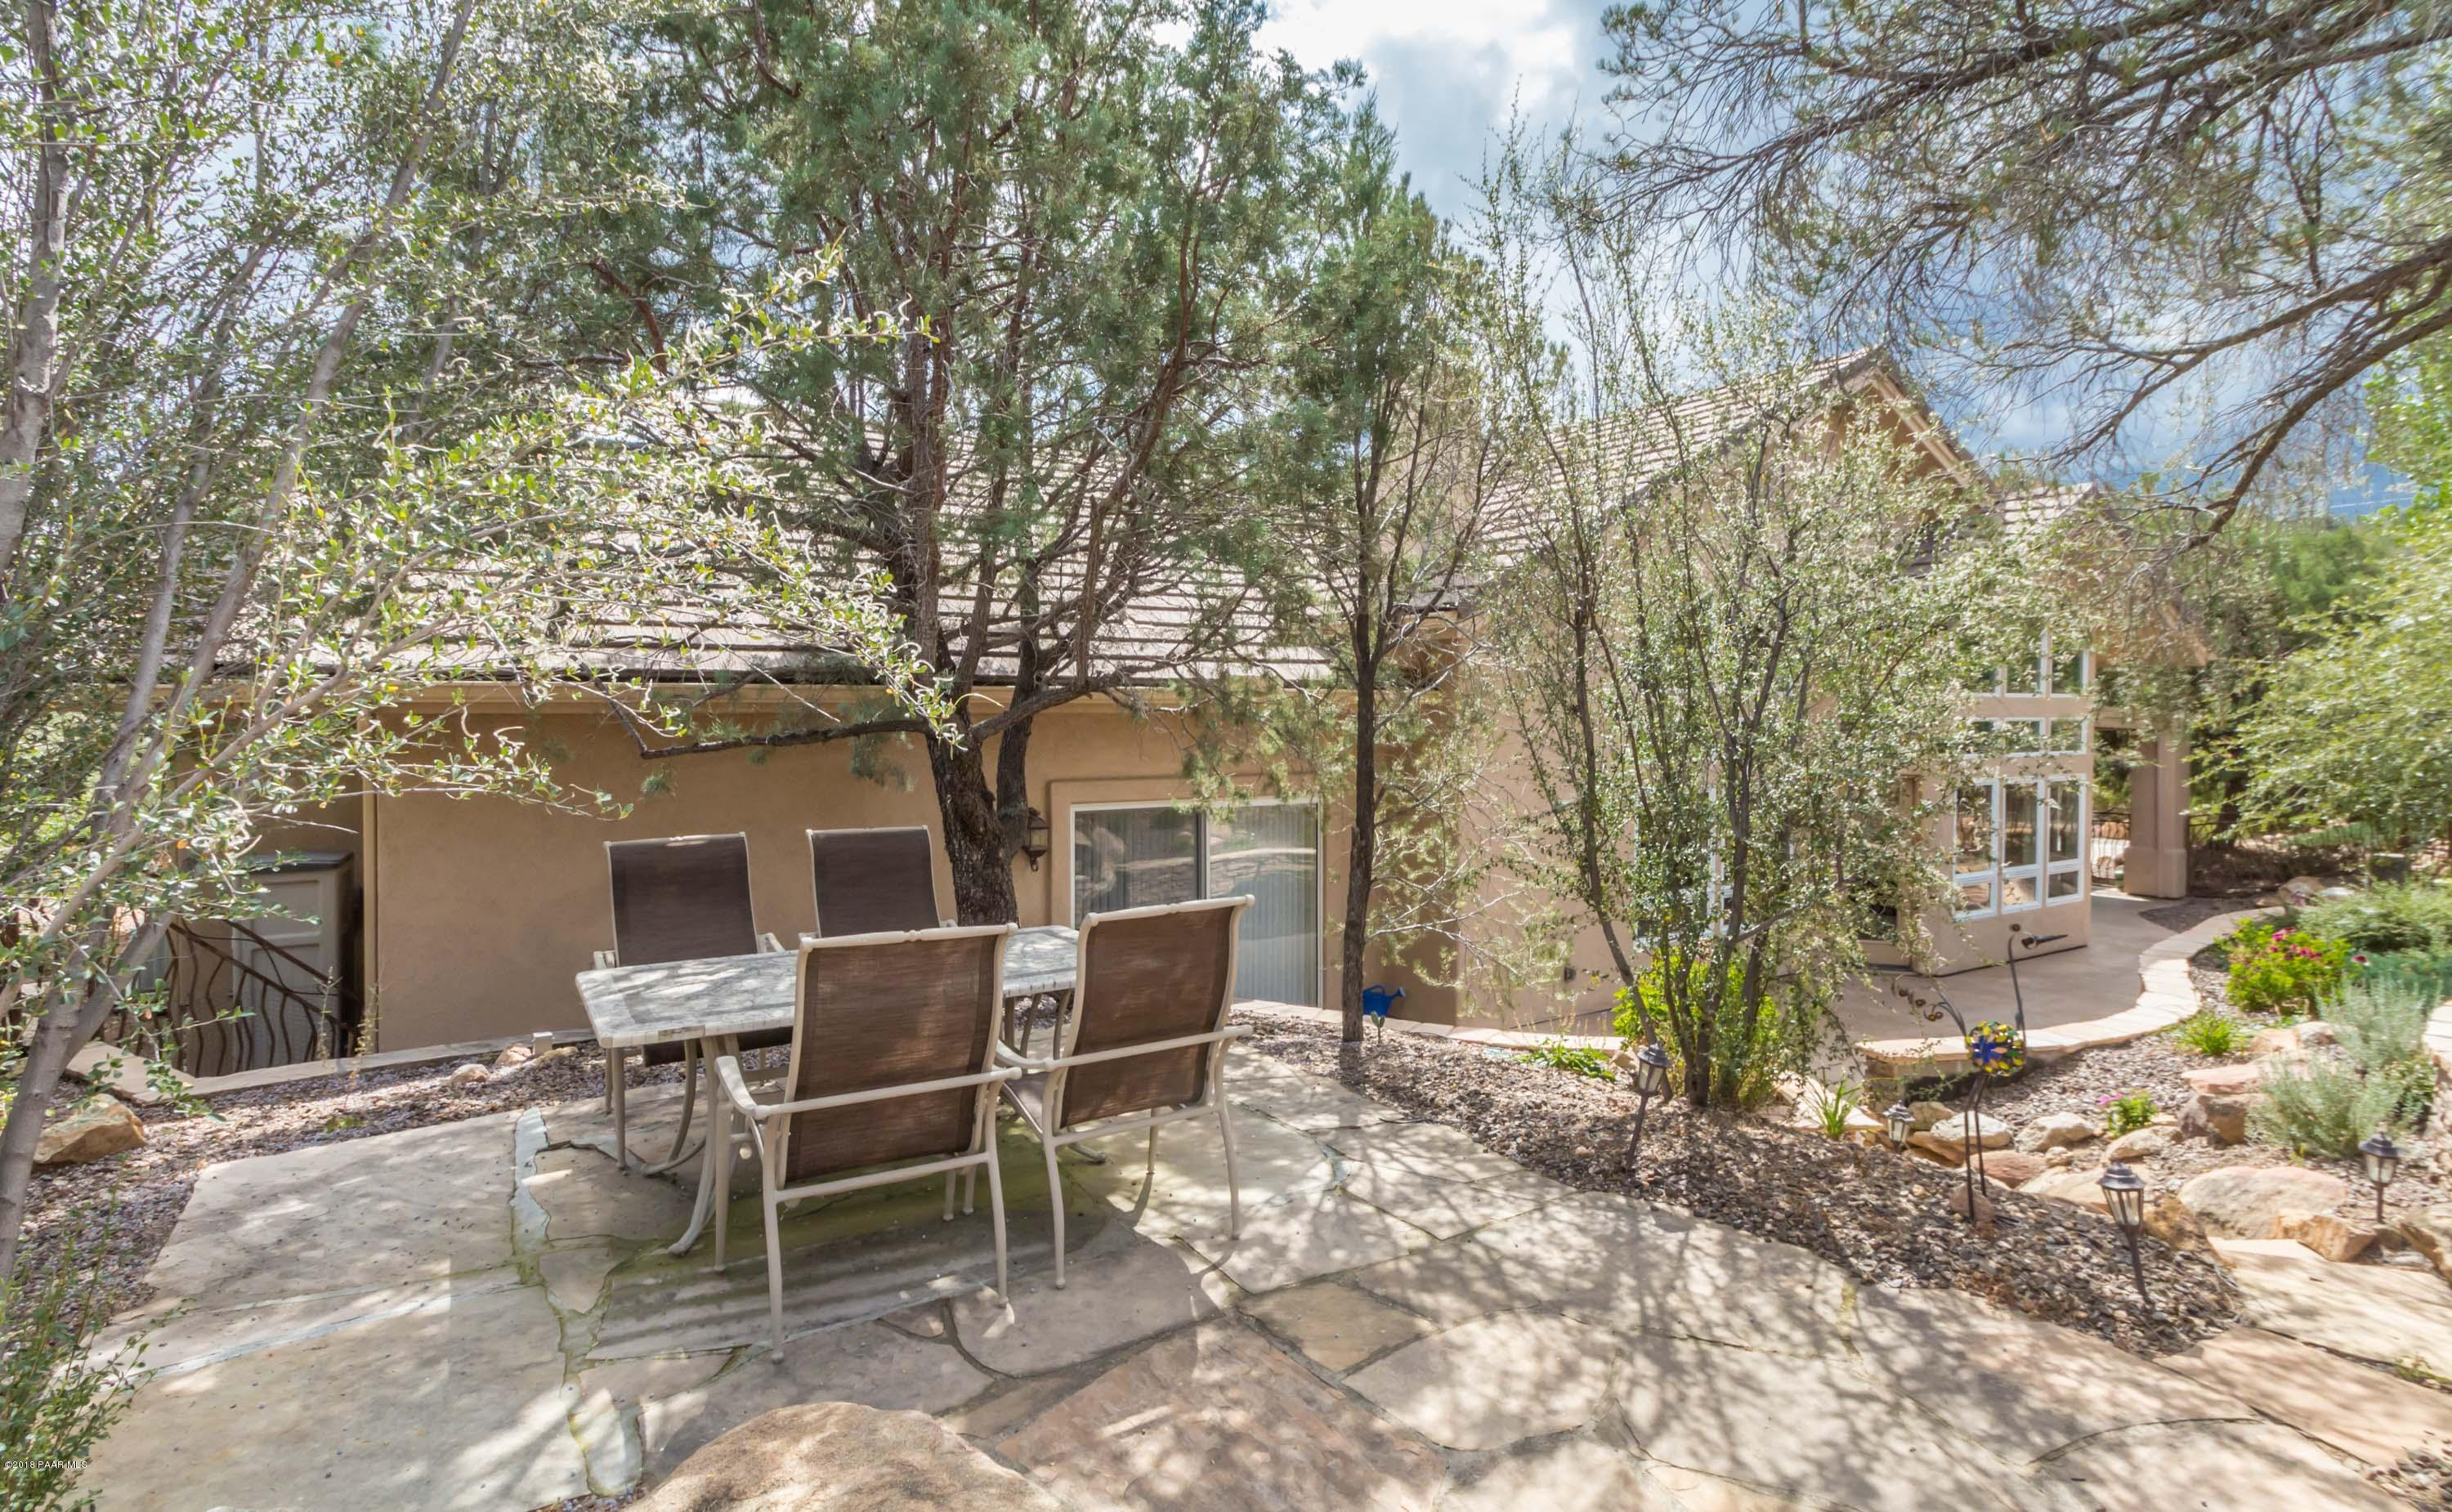 1464 Creek Trail Prescott, AZ 86305 - MLS #: 1015733